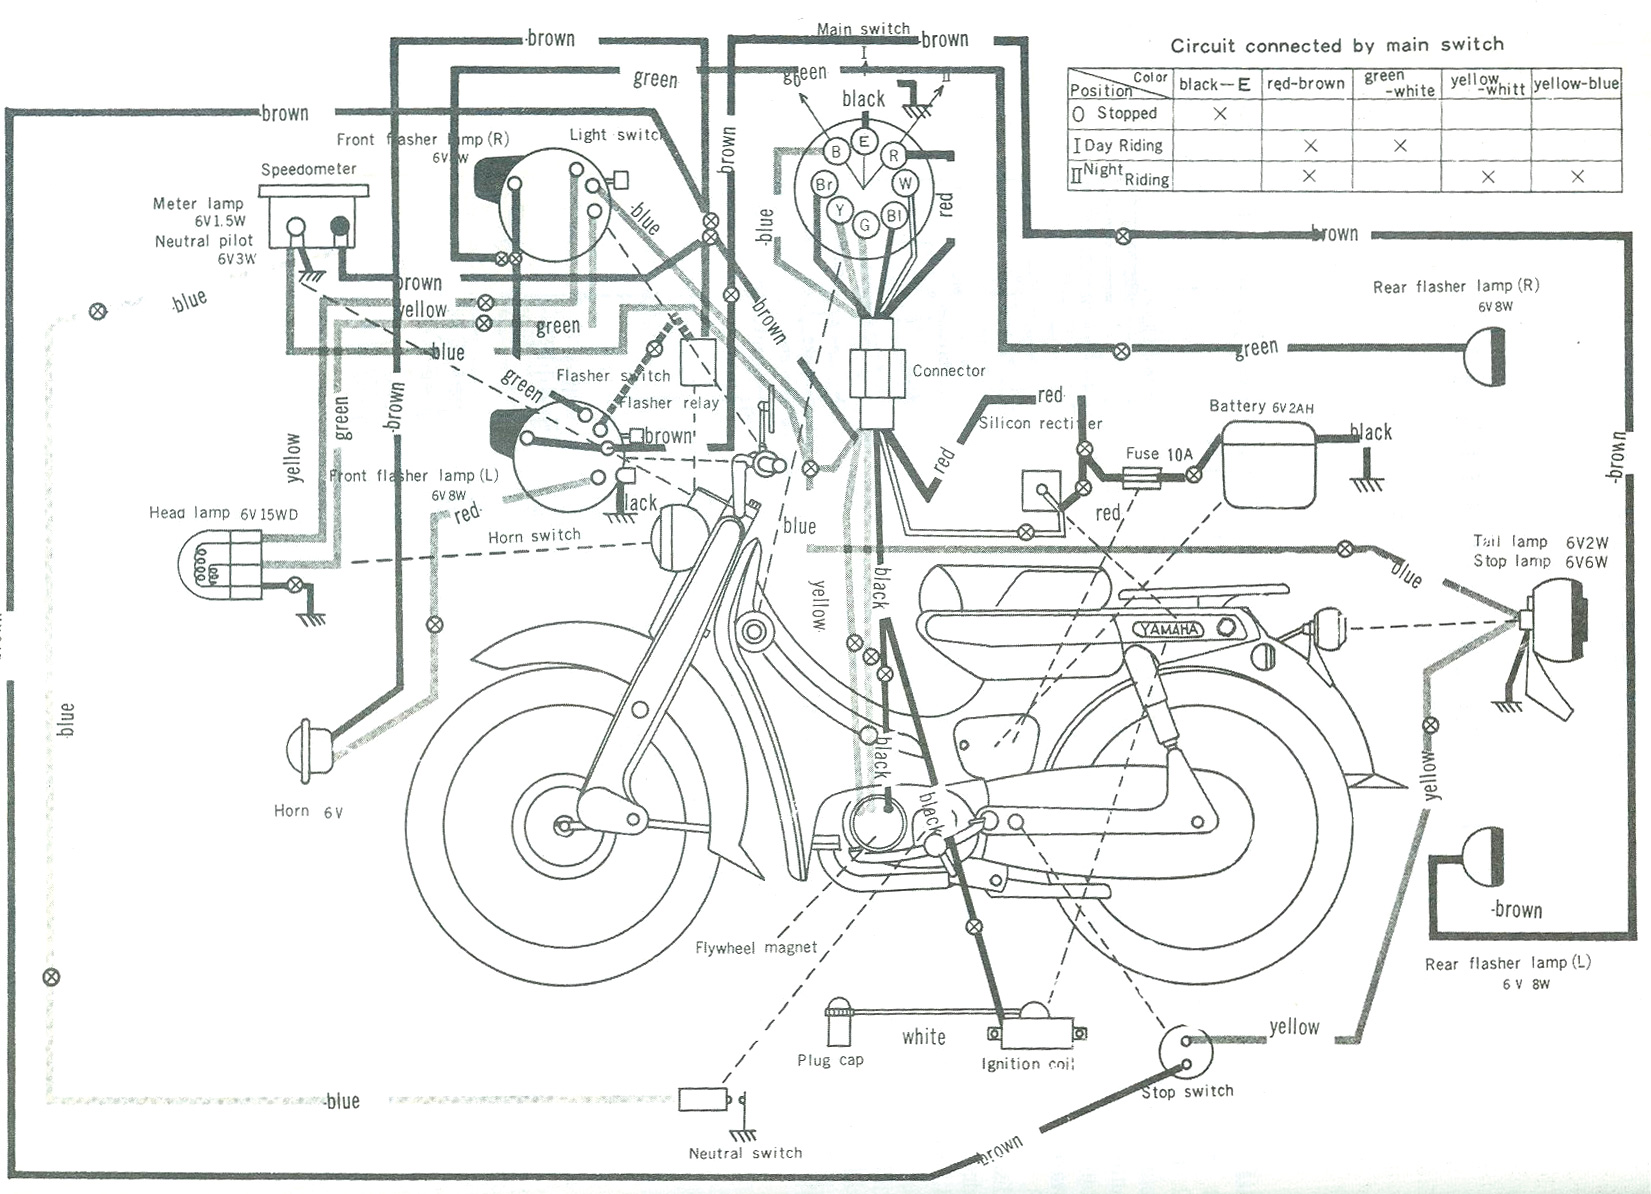 Yamaha Dt 100 Wiring Diagram Experts Ttr125 1974 125 Enduro Service Manual Hobbiesxstyle Lt